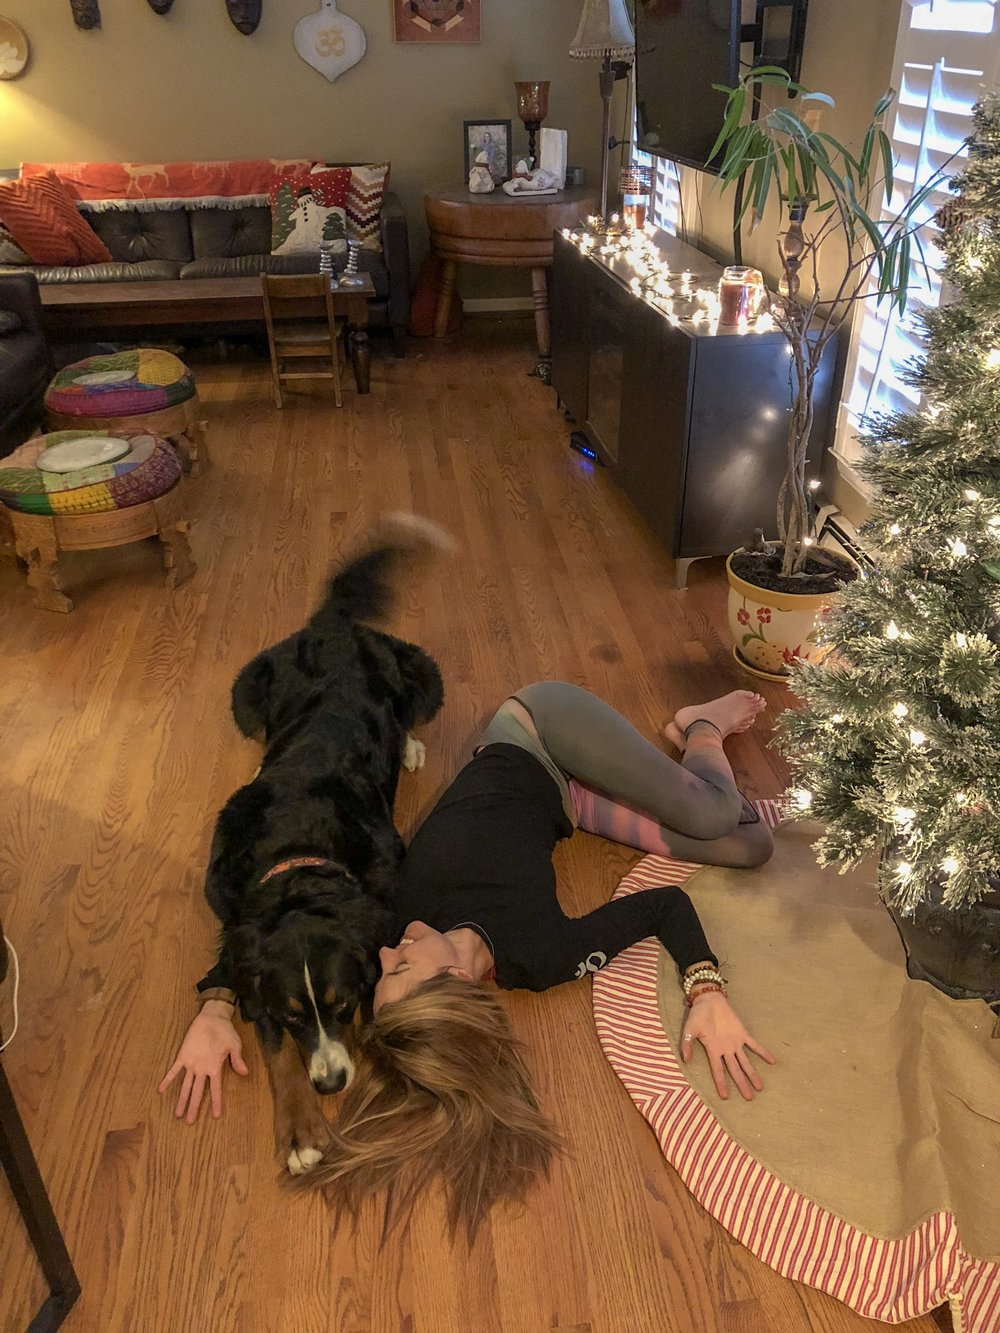 Reclined twists feel great on the low back after a long day shopping, cooking, or wrapping gifts. Our furry friends are also very emotionally supportive. Read my last blog post on  Simple Stretches to Reduce Back Pain .